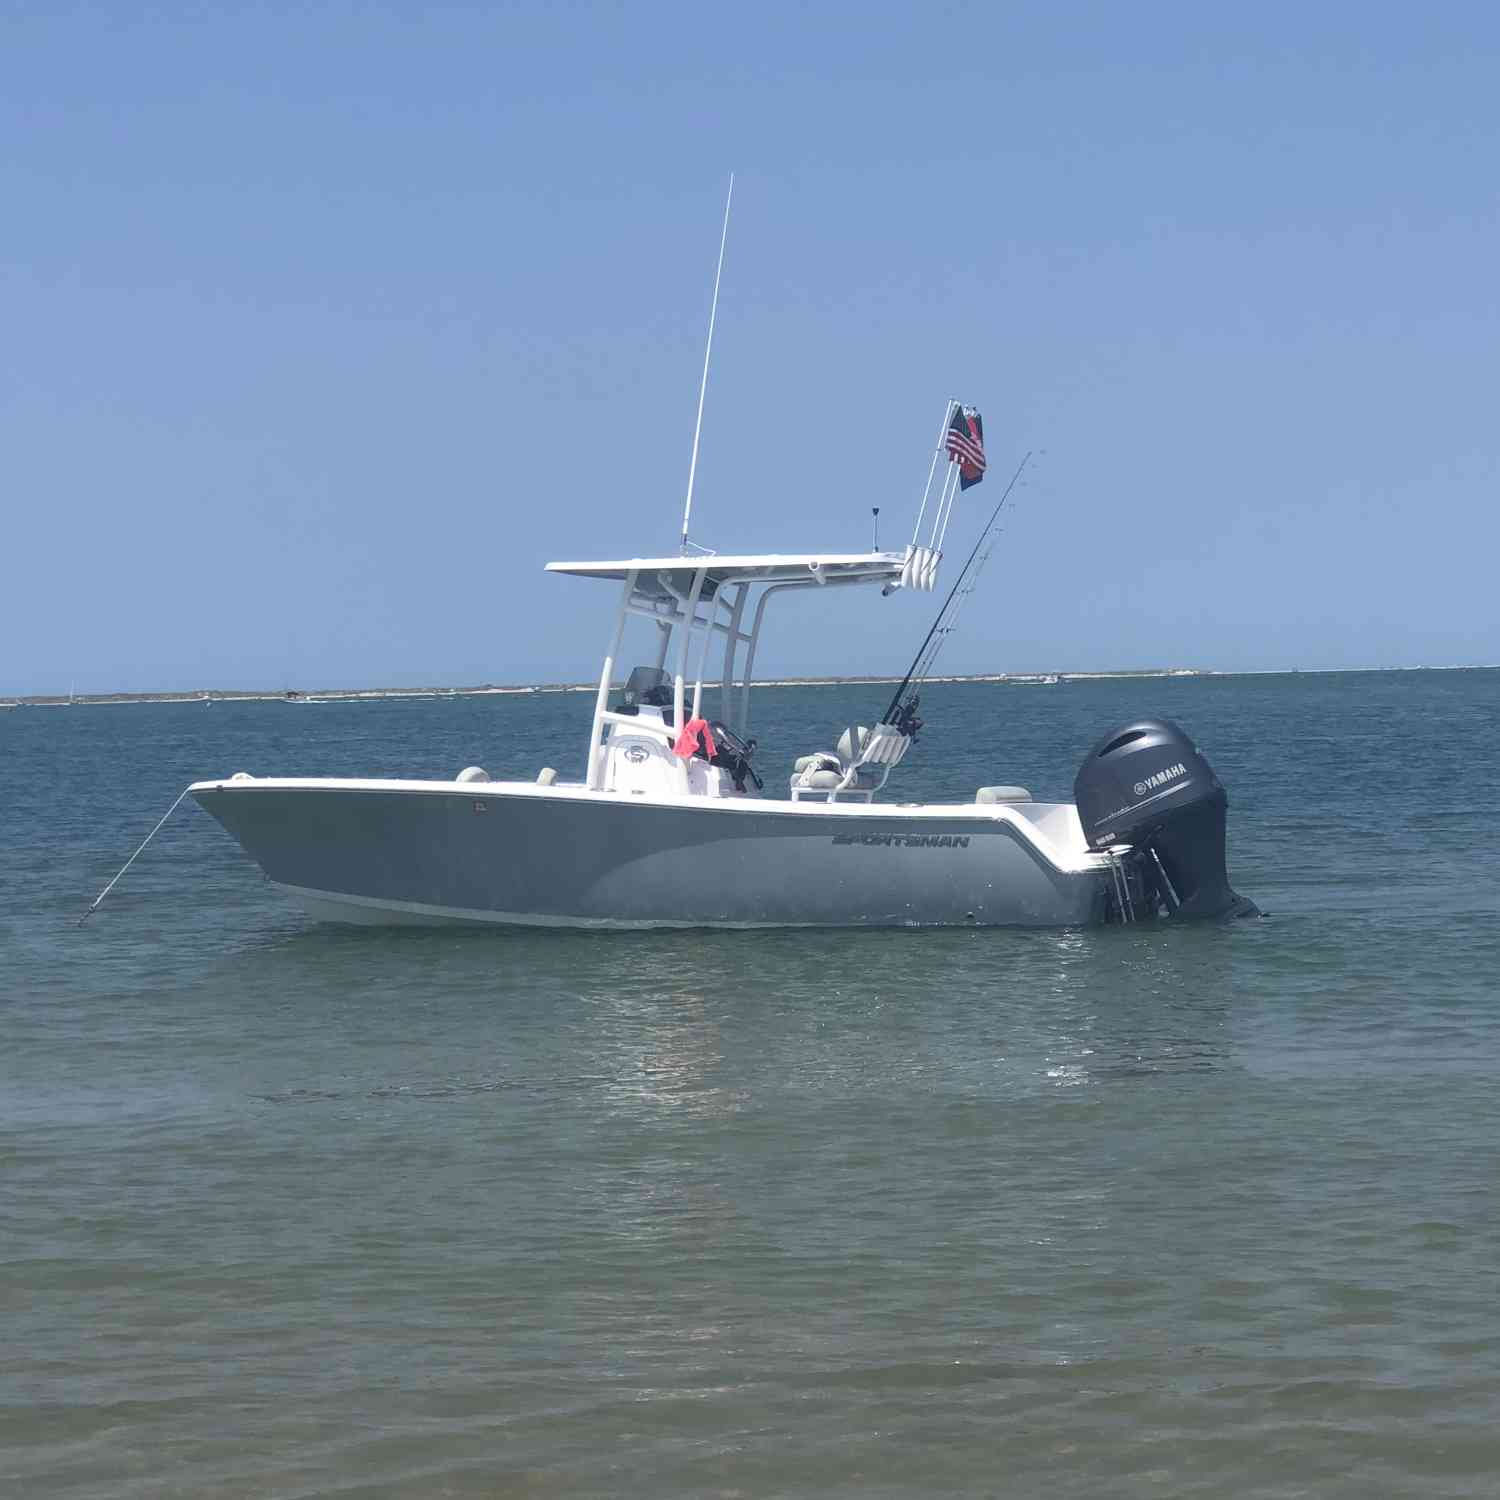 Title: Chill-axing - On board their Sportsman Open 212 Center Console - Location: Cape Lookout, NC. Participating in the Photo Contest #SportsmanJune2019